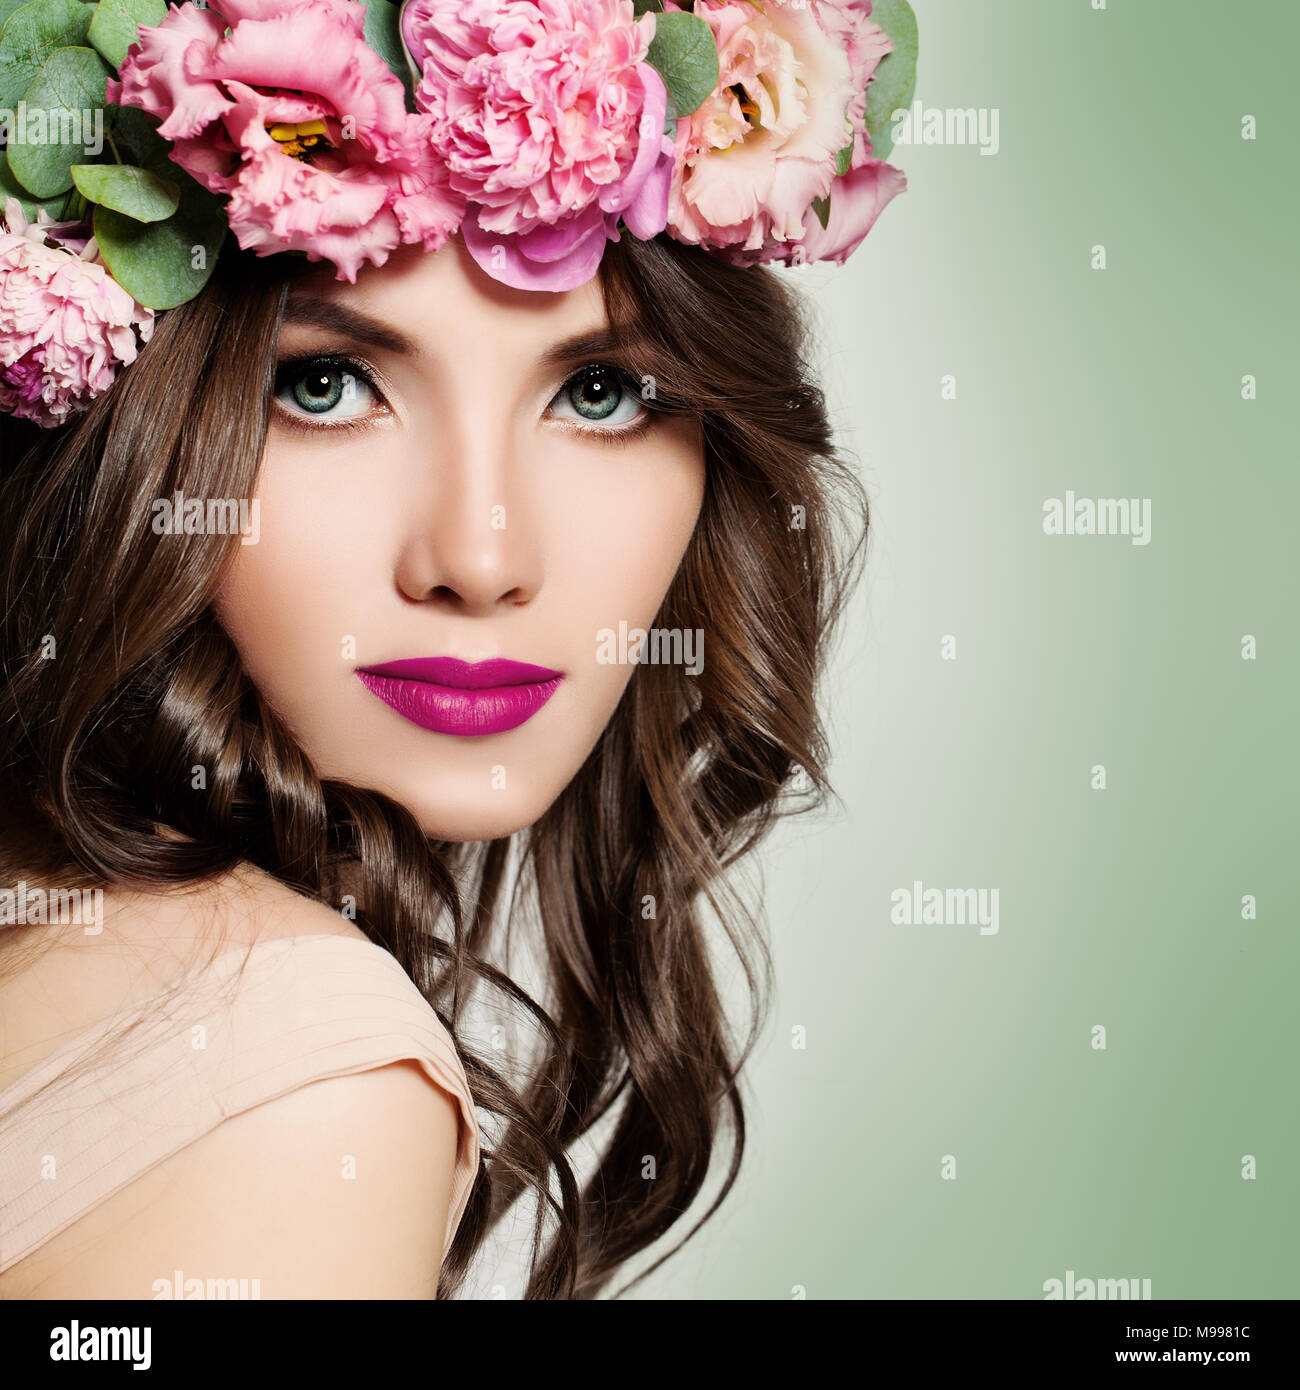 Beautiful girl pink flowers wreath stock photos beautiful girl beautiful girl with flowers wreath long permed curly hair and fashion makeup blossom portrait izmirmasajfo